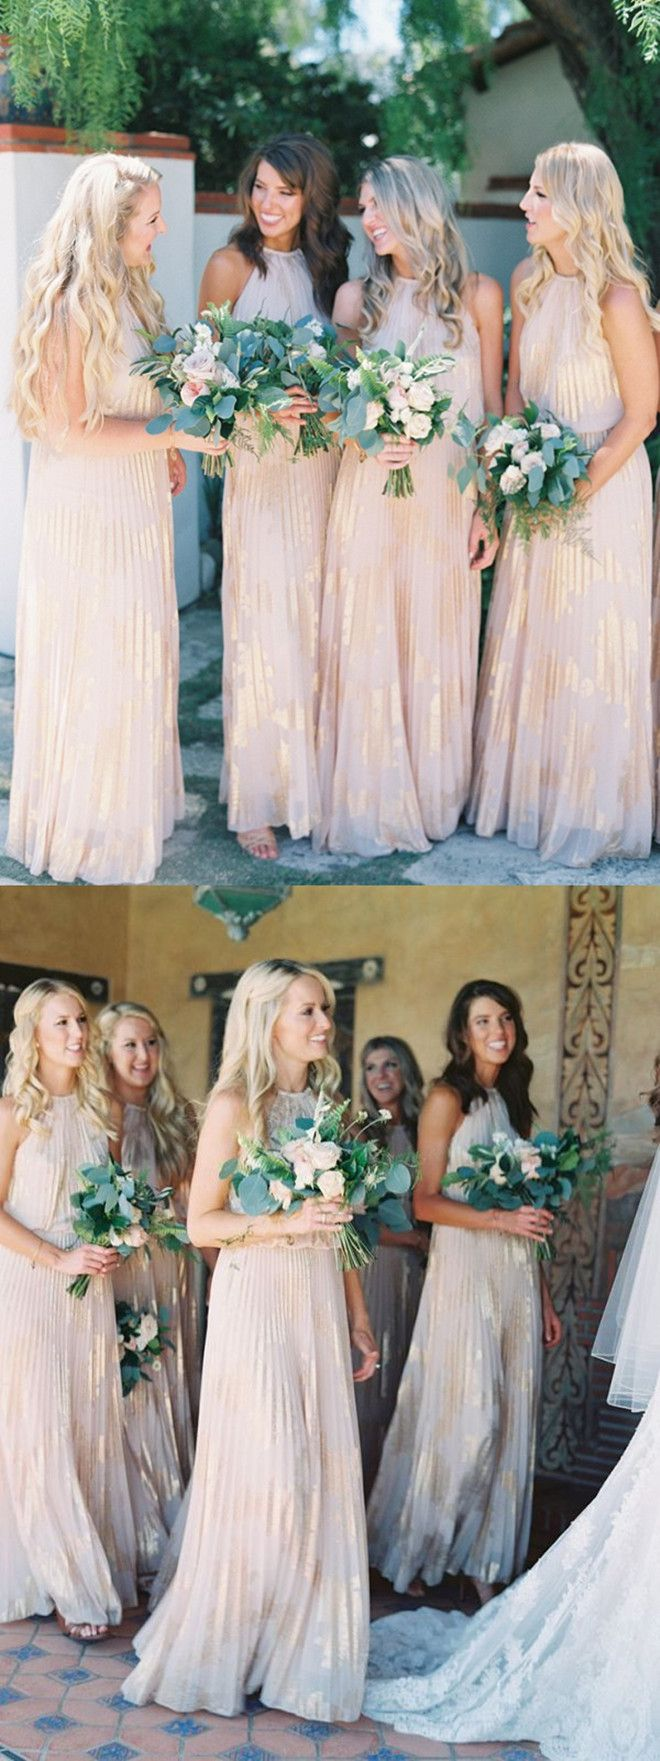 Best 25 champagne bridesmaid dresses ideas on pinterest 2017 bridesmaid dresseslong bridesmaid dresseselegant bridesmaid dresseschampagne bridesmaid dresses ombrellifo Images